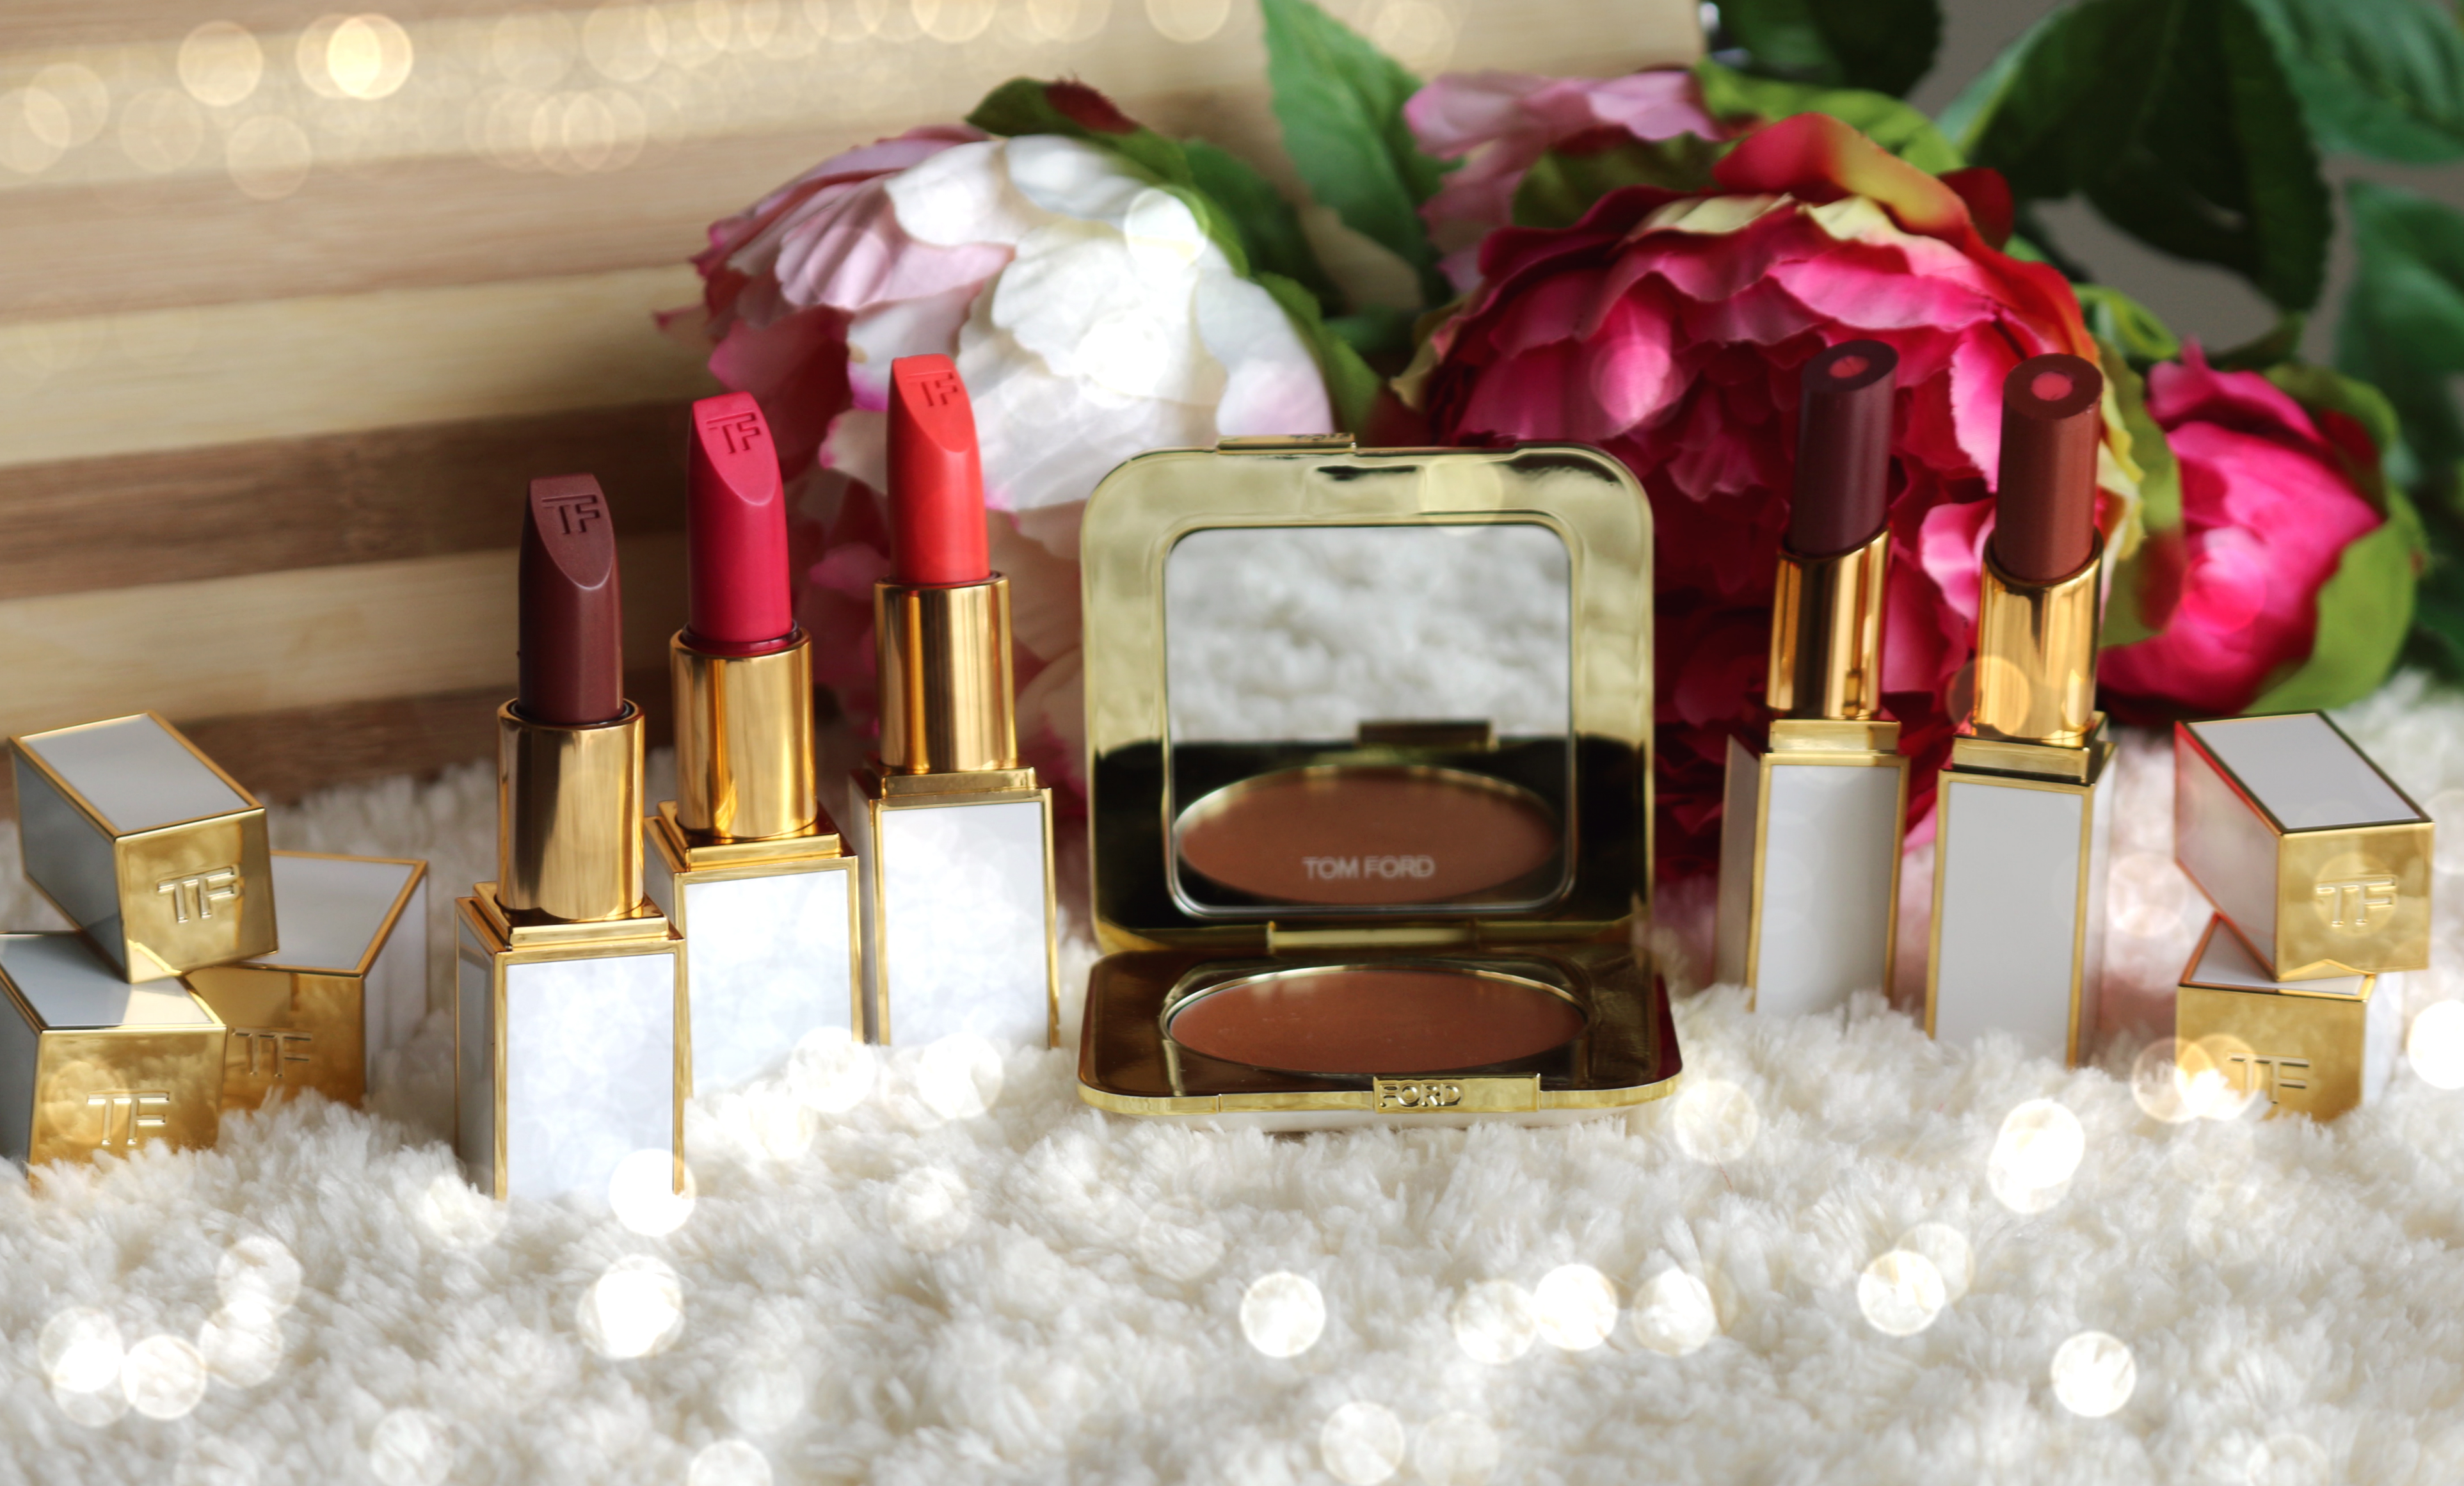 TOM FORD SOLEIL COLLECTION – CREAM CHEEK COLOR, MOISTURECORE & ULTRA RICH LIP COLORS